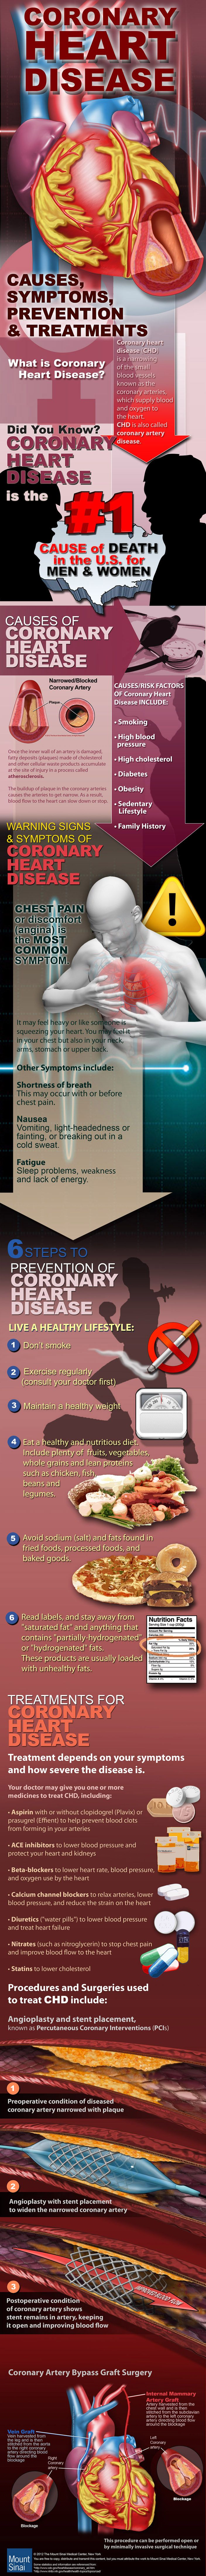 #Heart Disease #Infographic - Cardiovascular Disease Risk Affected By #BloodPressure Changes www.ahealthblog.com/qfps